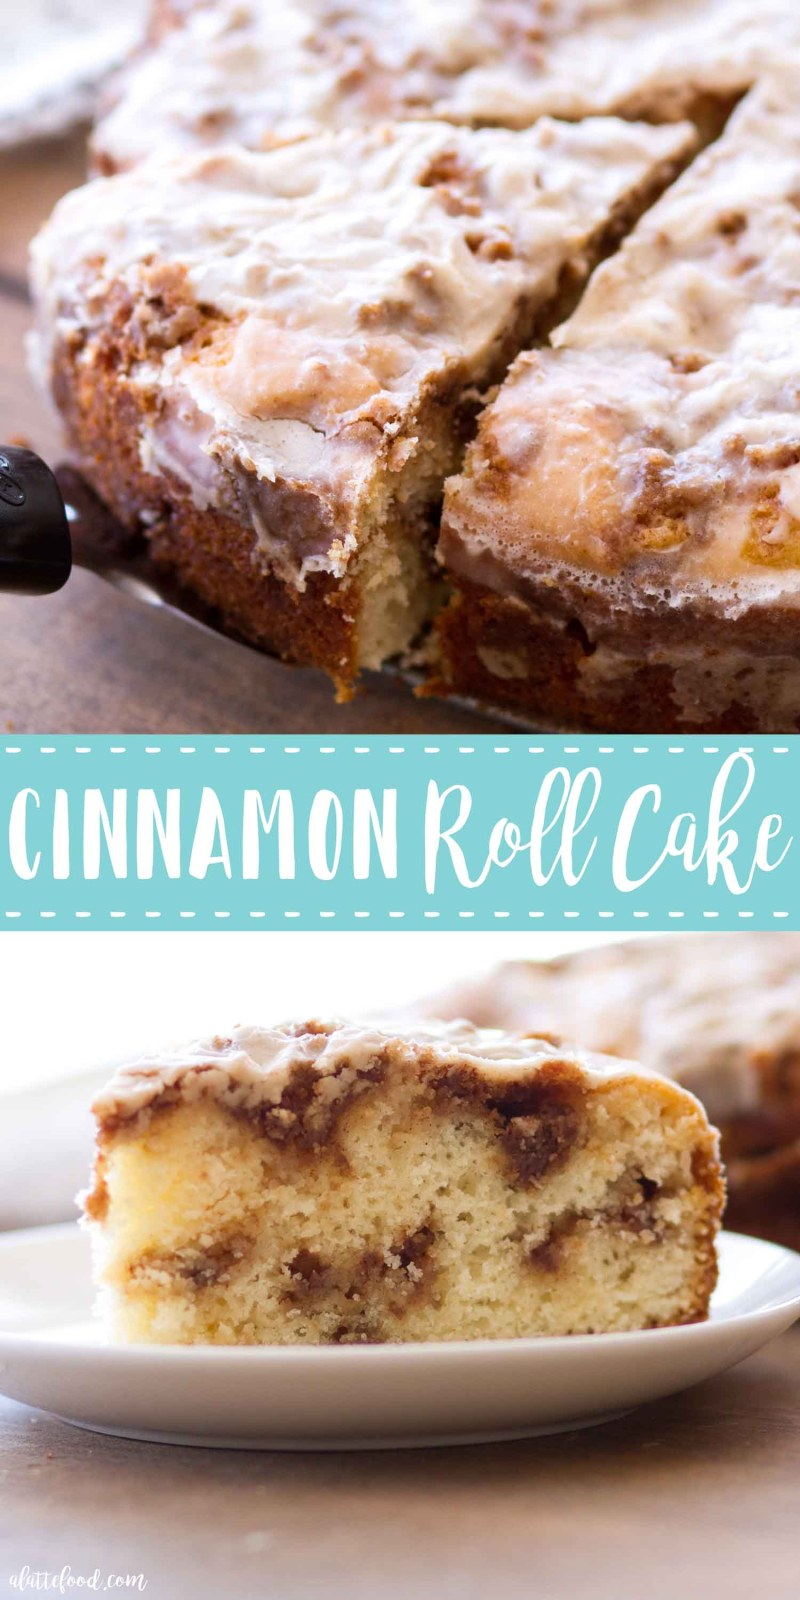 This Cinnamon Roll Cake Recipe is a rich yet tender vanilla cake swirled with all of the flavors of a classic cinnamon roll. This Cinnamon Roll Cake, topped with a cinnamon glaze, has become one of my new favorite cake recipes, and is sure to be a new fall dessert favorite! #cake #cinnamon #dessert #recipe #fall